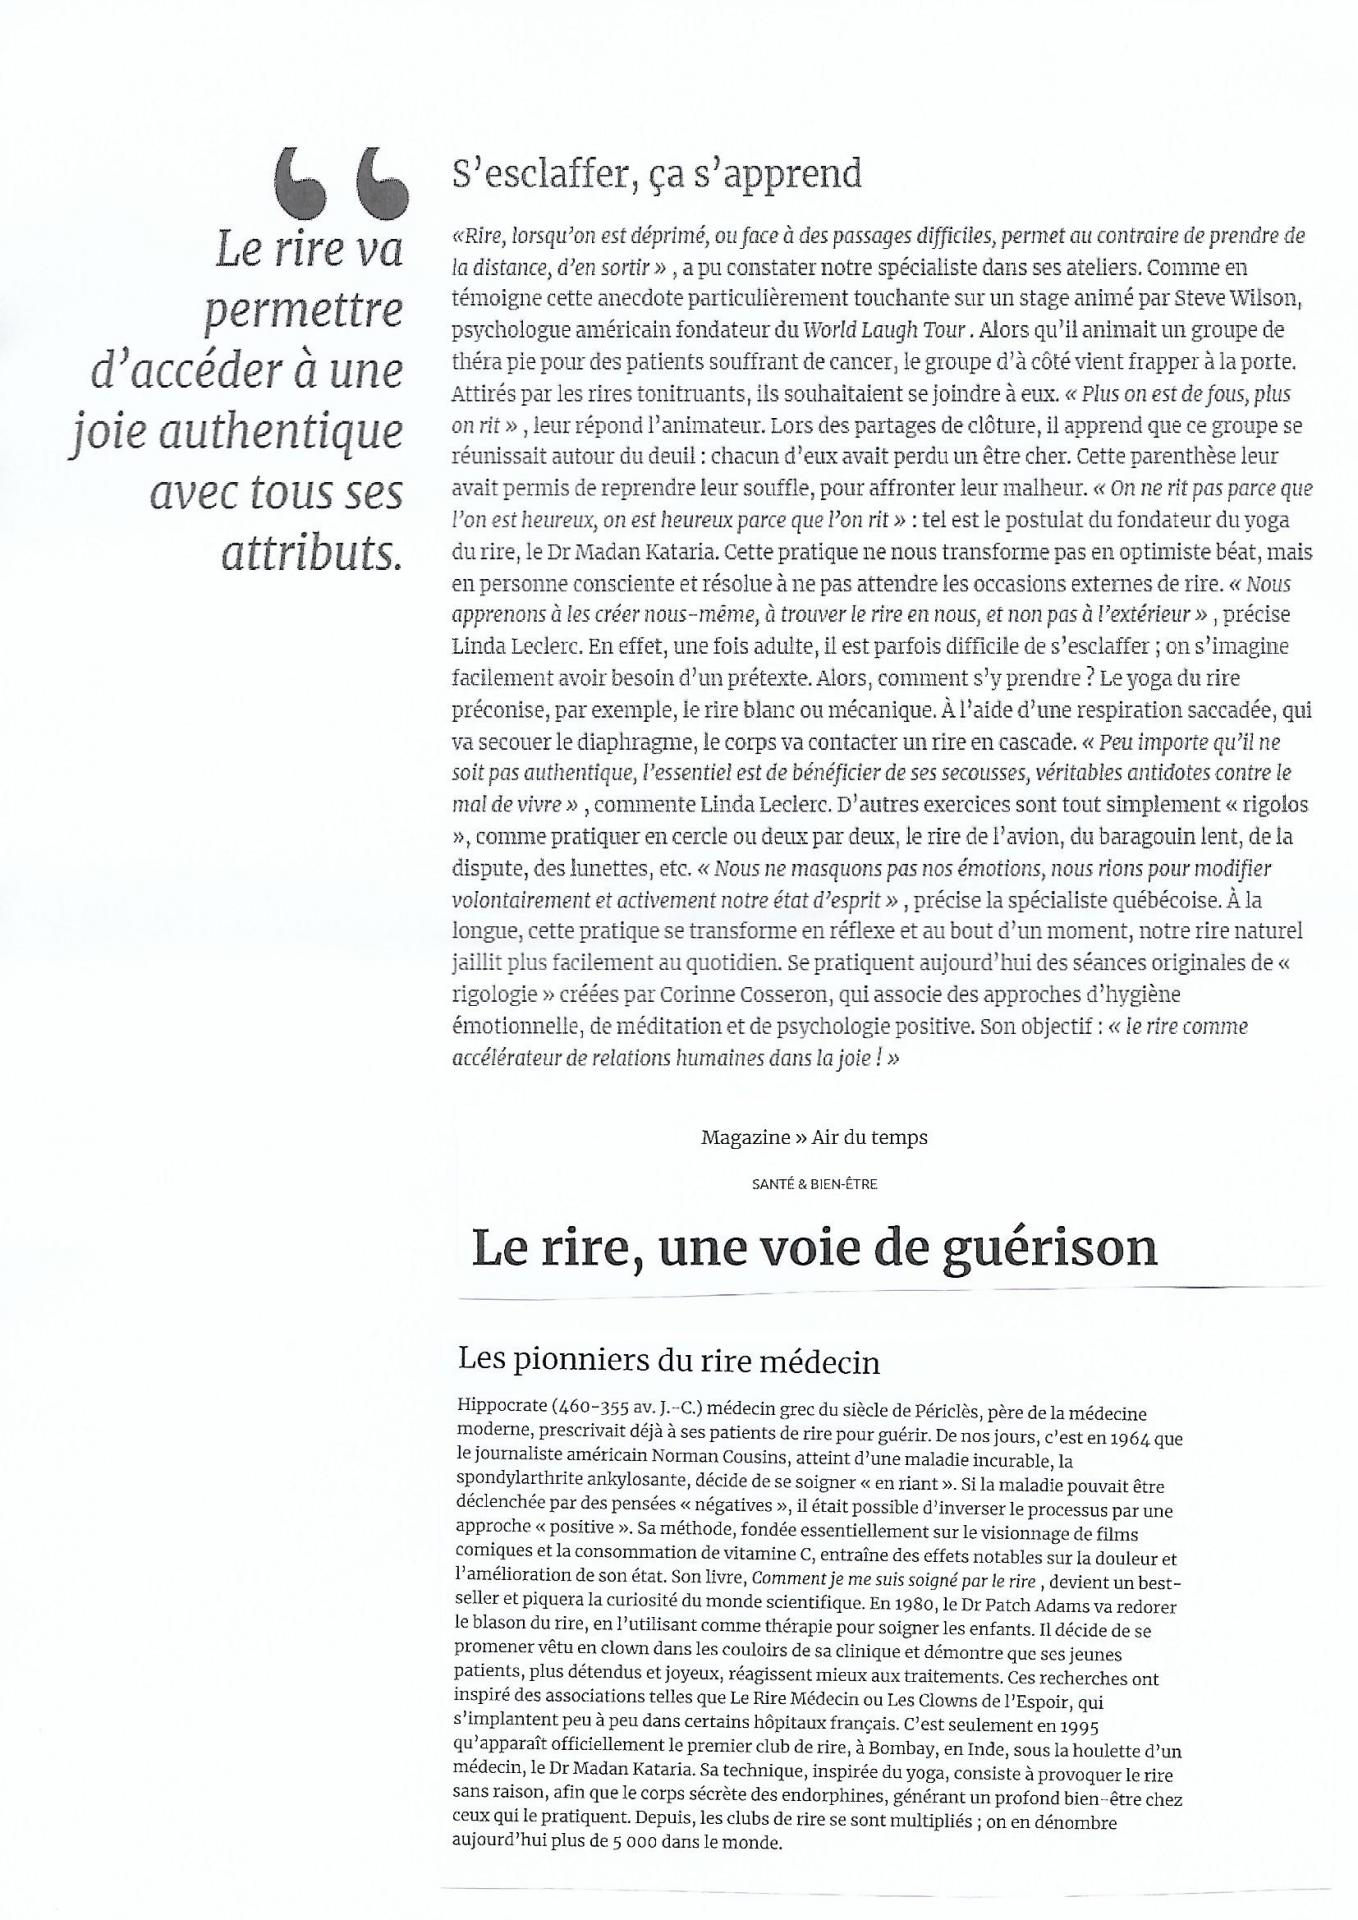 Article magazine air du temps